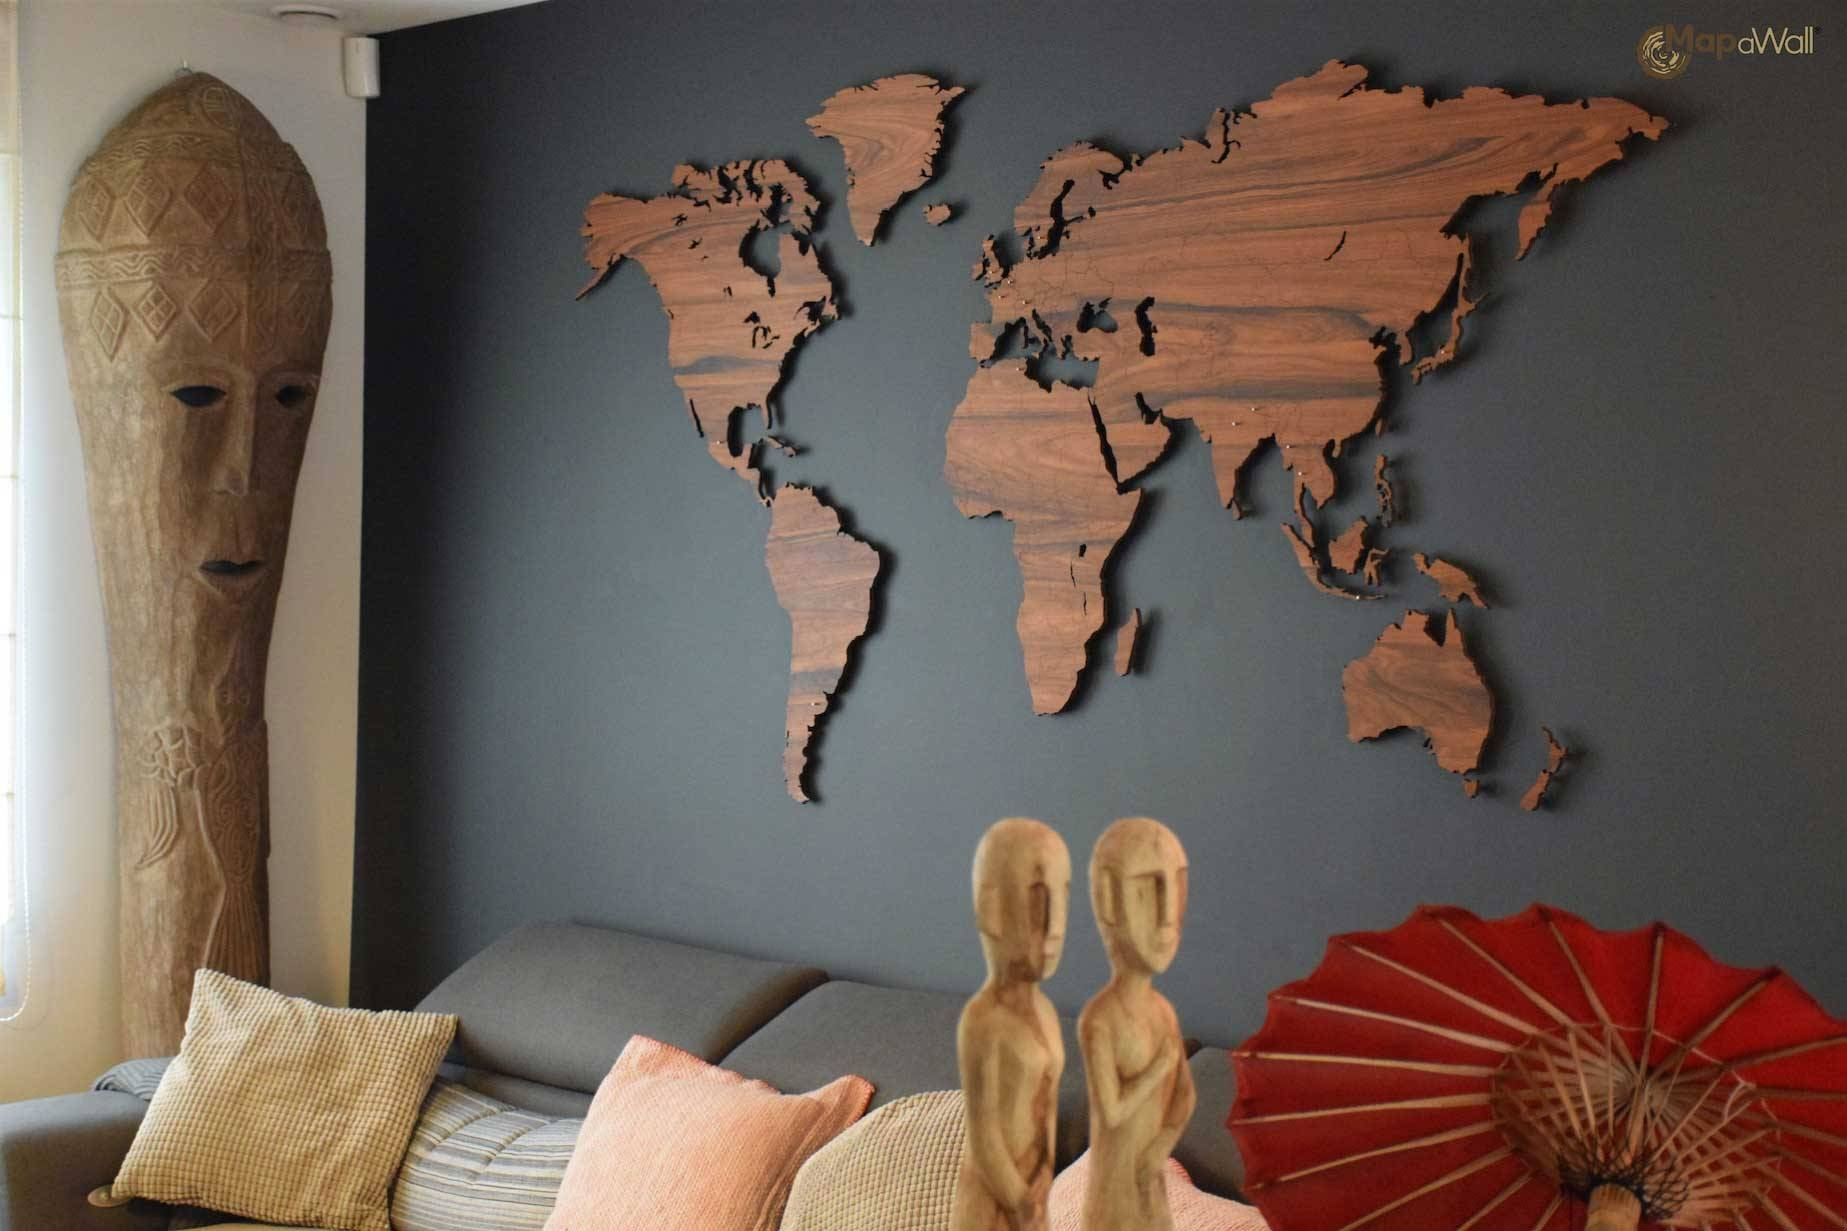 Mapawall Wooden World Map Palisander With Country Borders Inside Latest World Map Wood Wall Art (View 9 of 20)